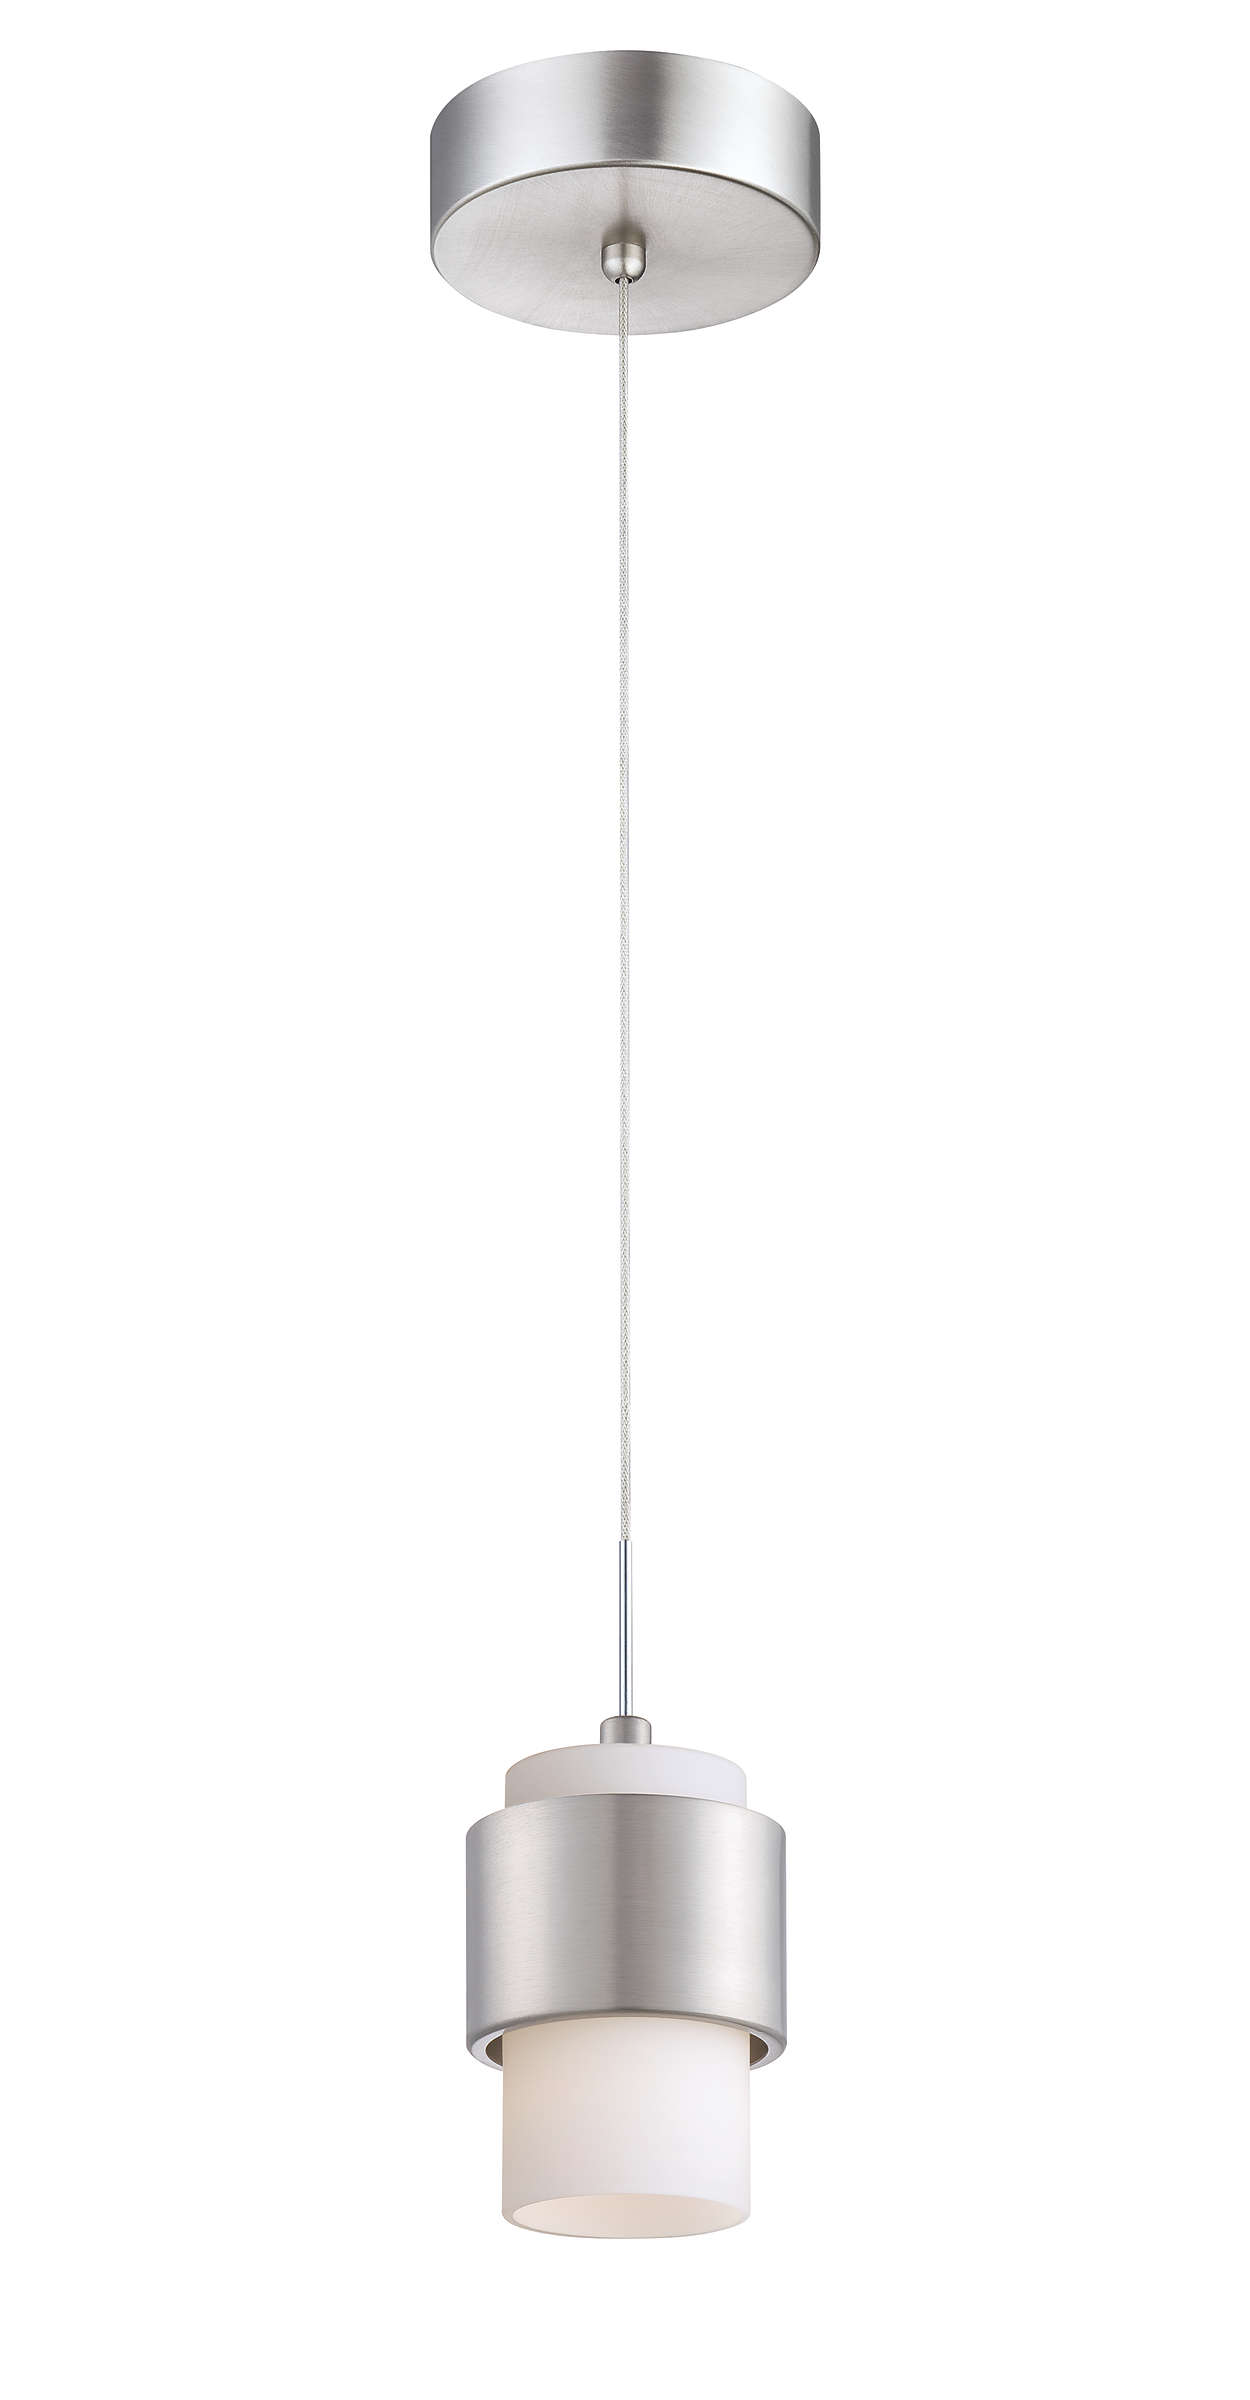 Canister 1-light LED pendant, Satin Nickel finish